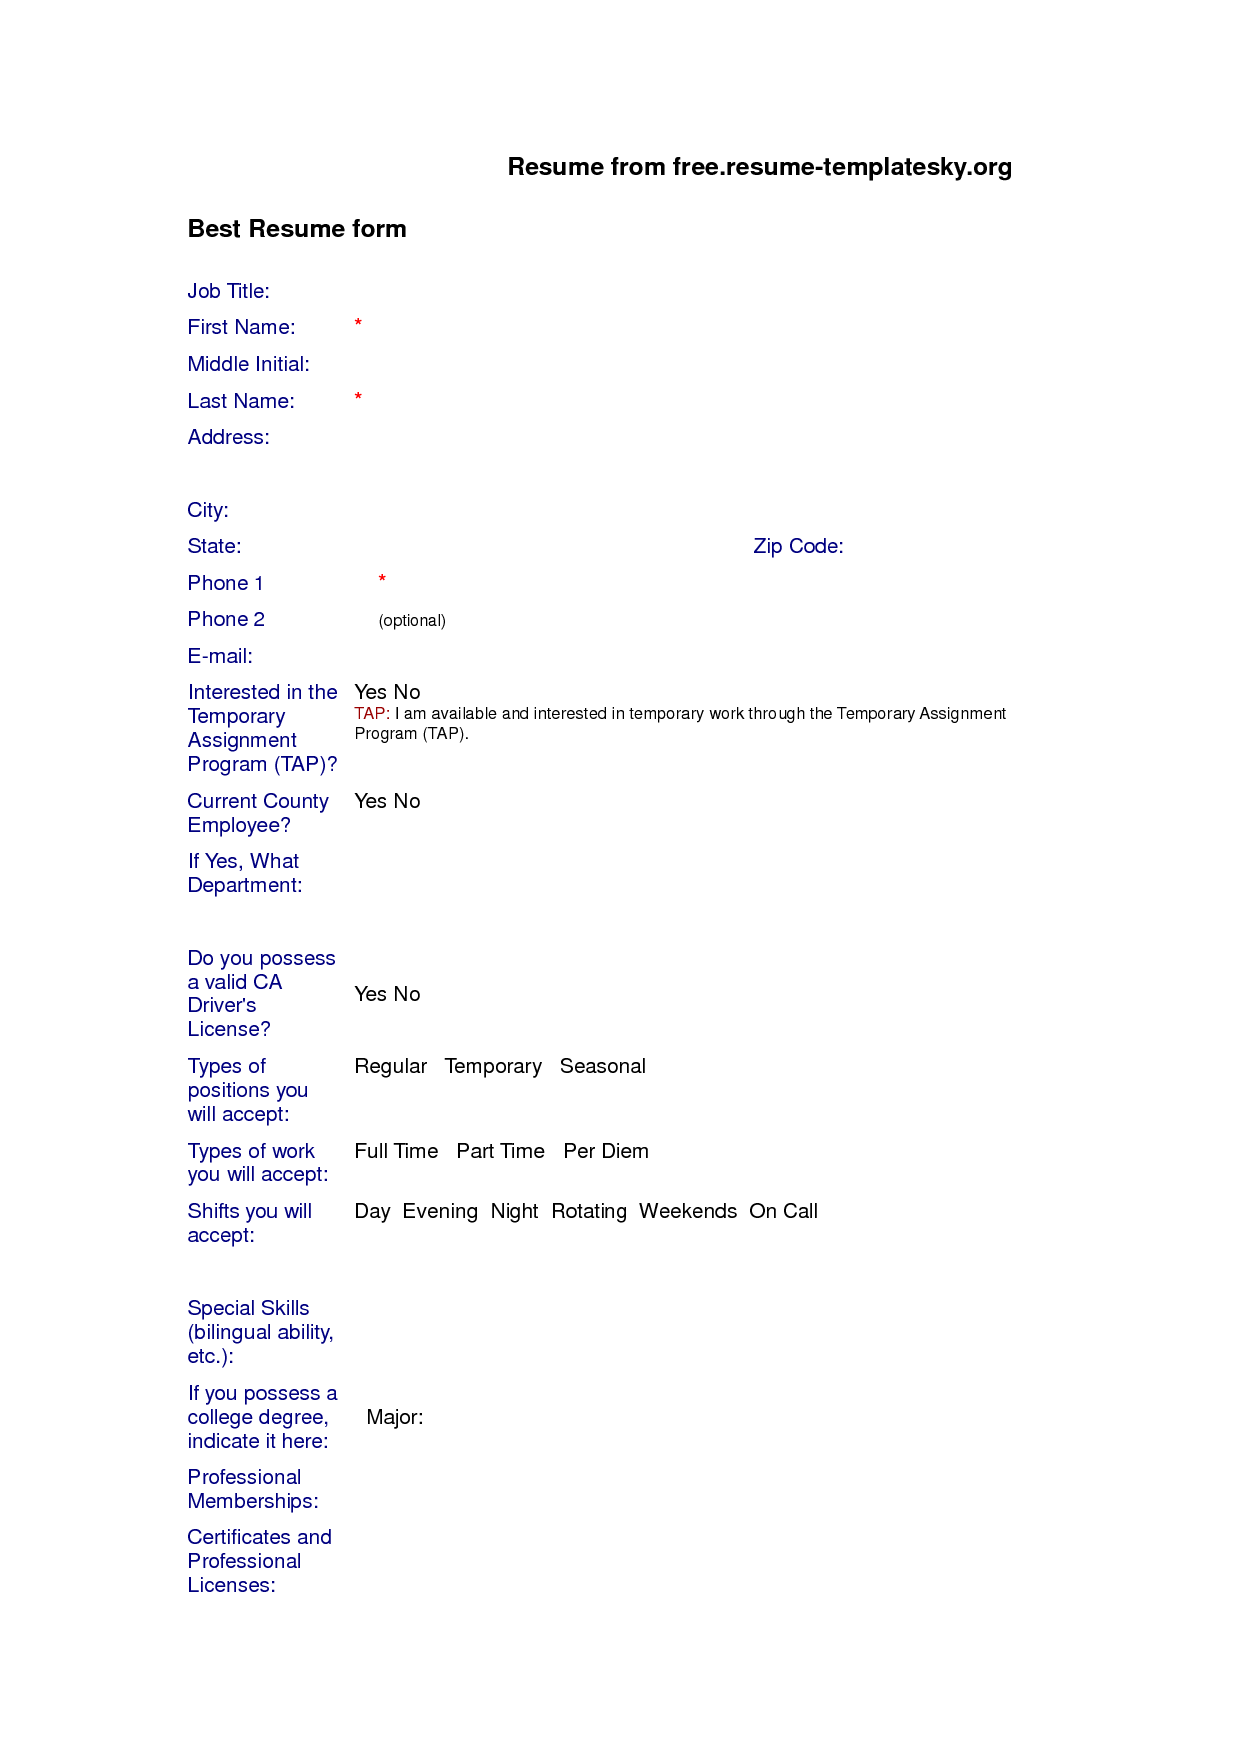 Blank Resume Blank Resume Format Free Download  Httpwww.resumecareerbl .